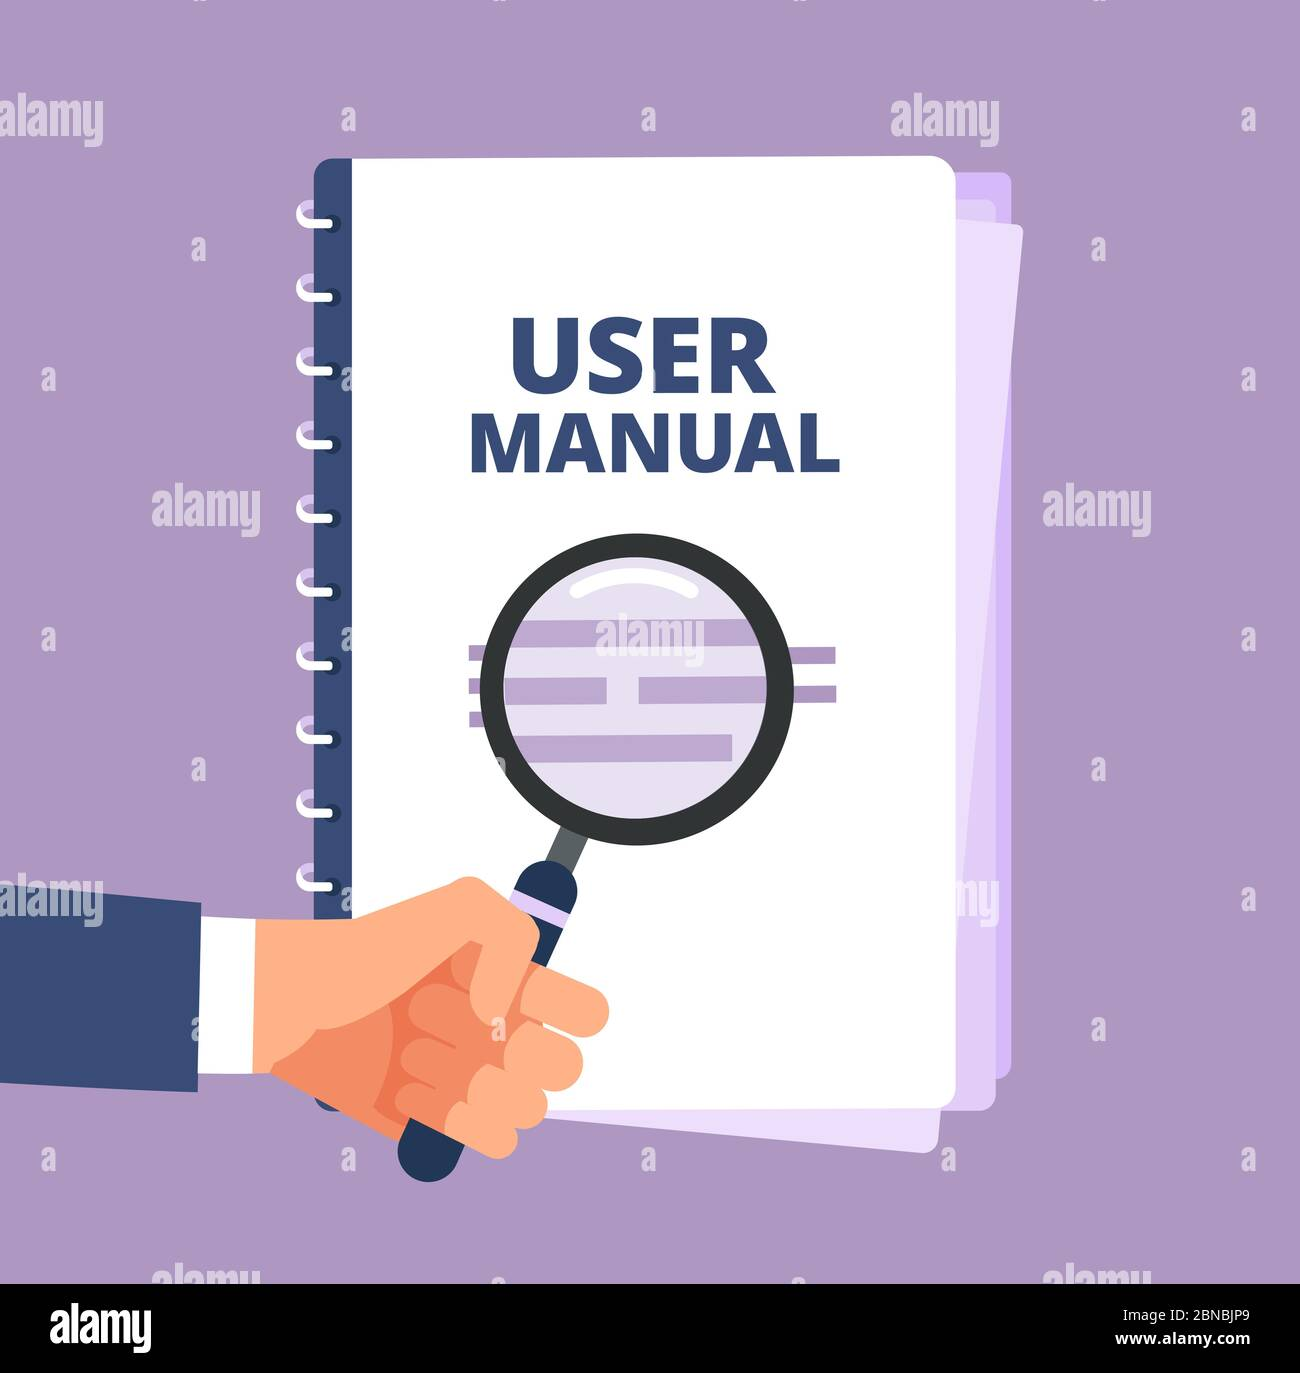 User manual with magnifying glass. User guide document and magnifier. Handbook, handbook, instruction and guidebook vector icon. Illustration of instruction handbook with information help Stock Vector